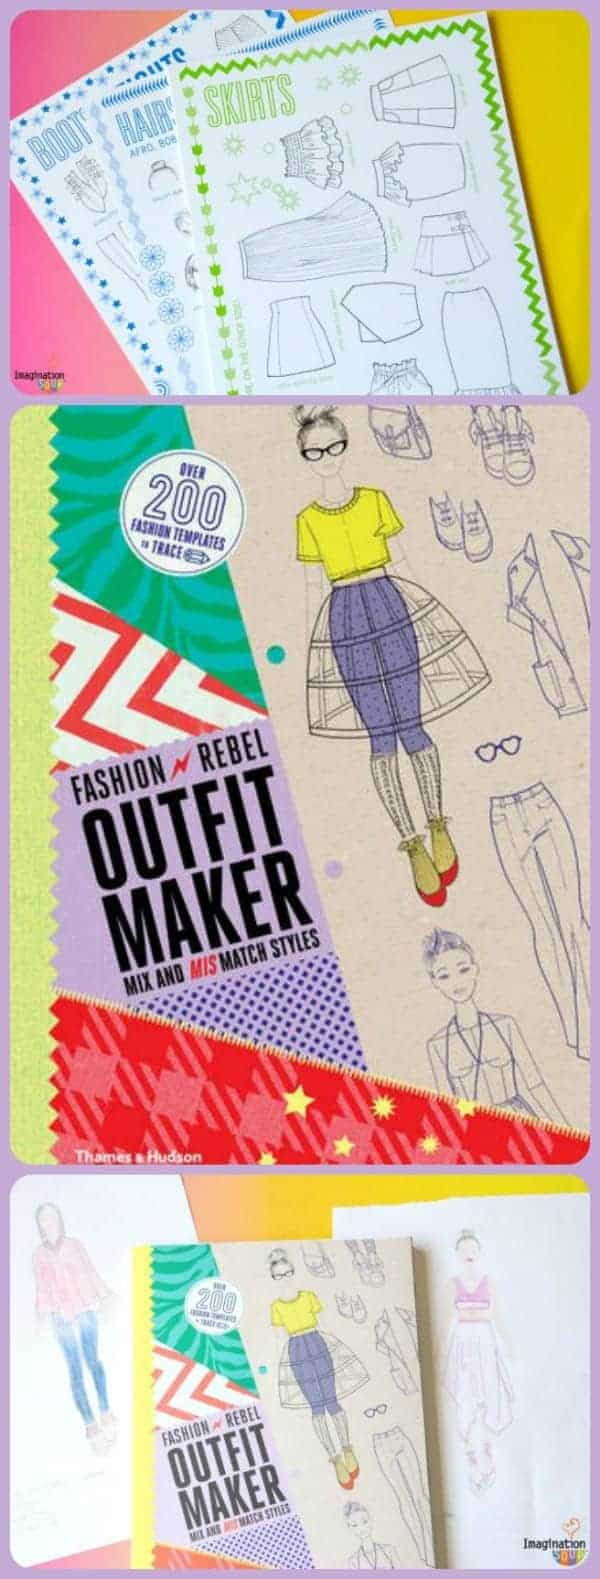 Gift Ideas for Tweens and Teens Fashion Rebel Outfit Maker